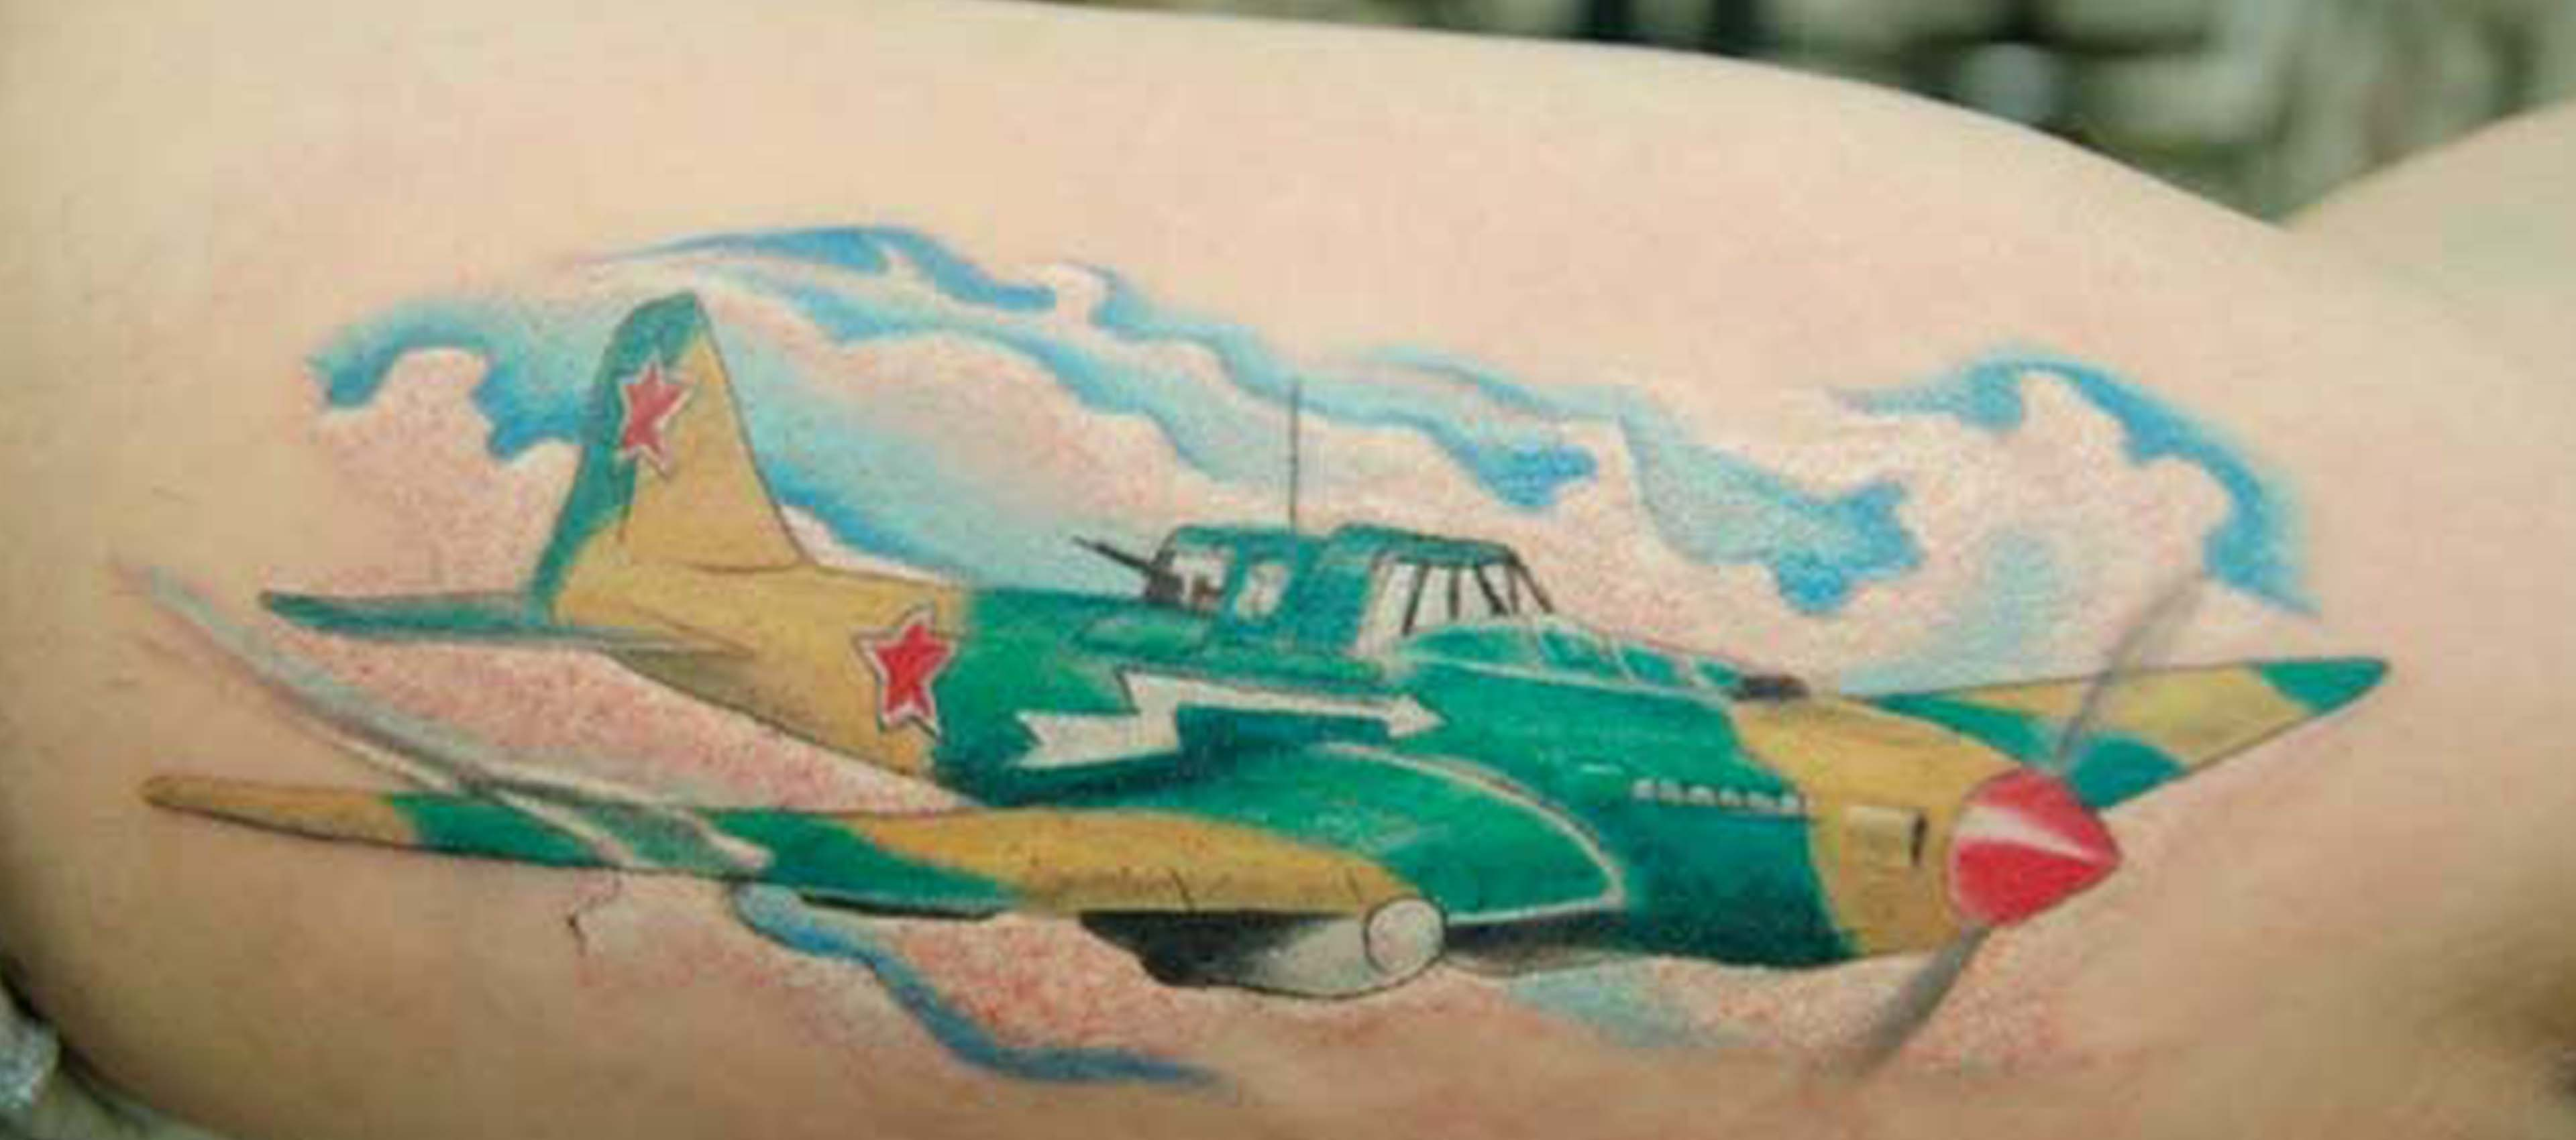 air force tattoo policy